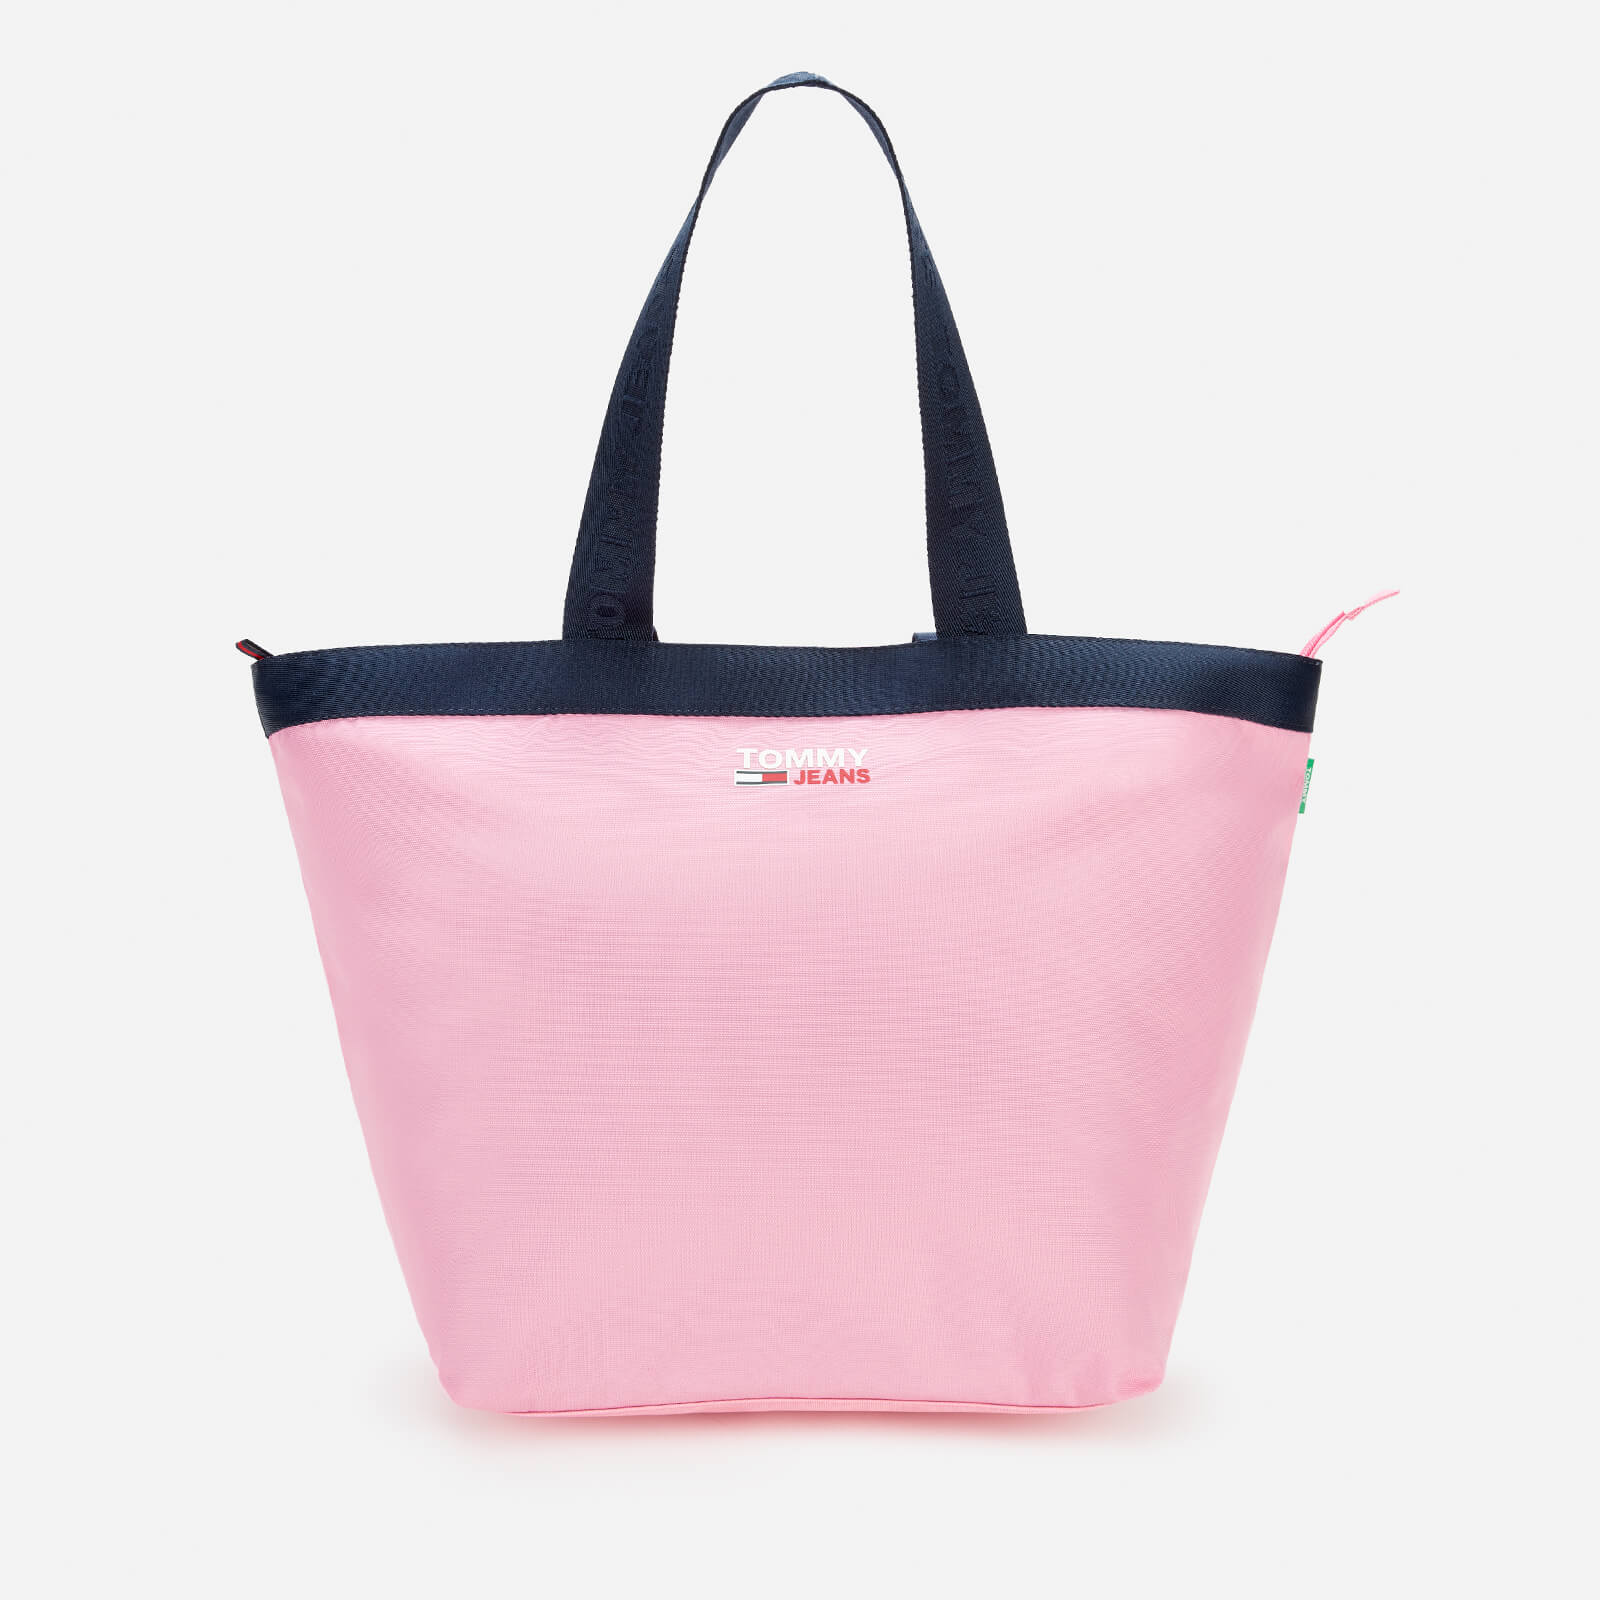 tommy jeans women's campus tote bag - pink daisy